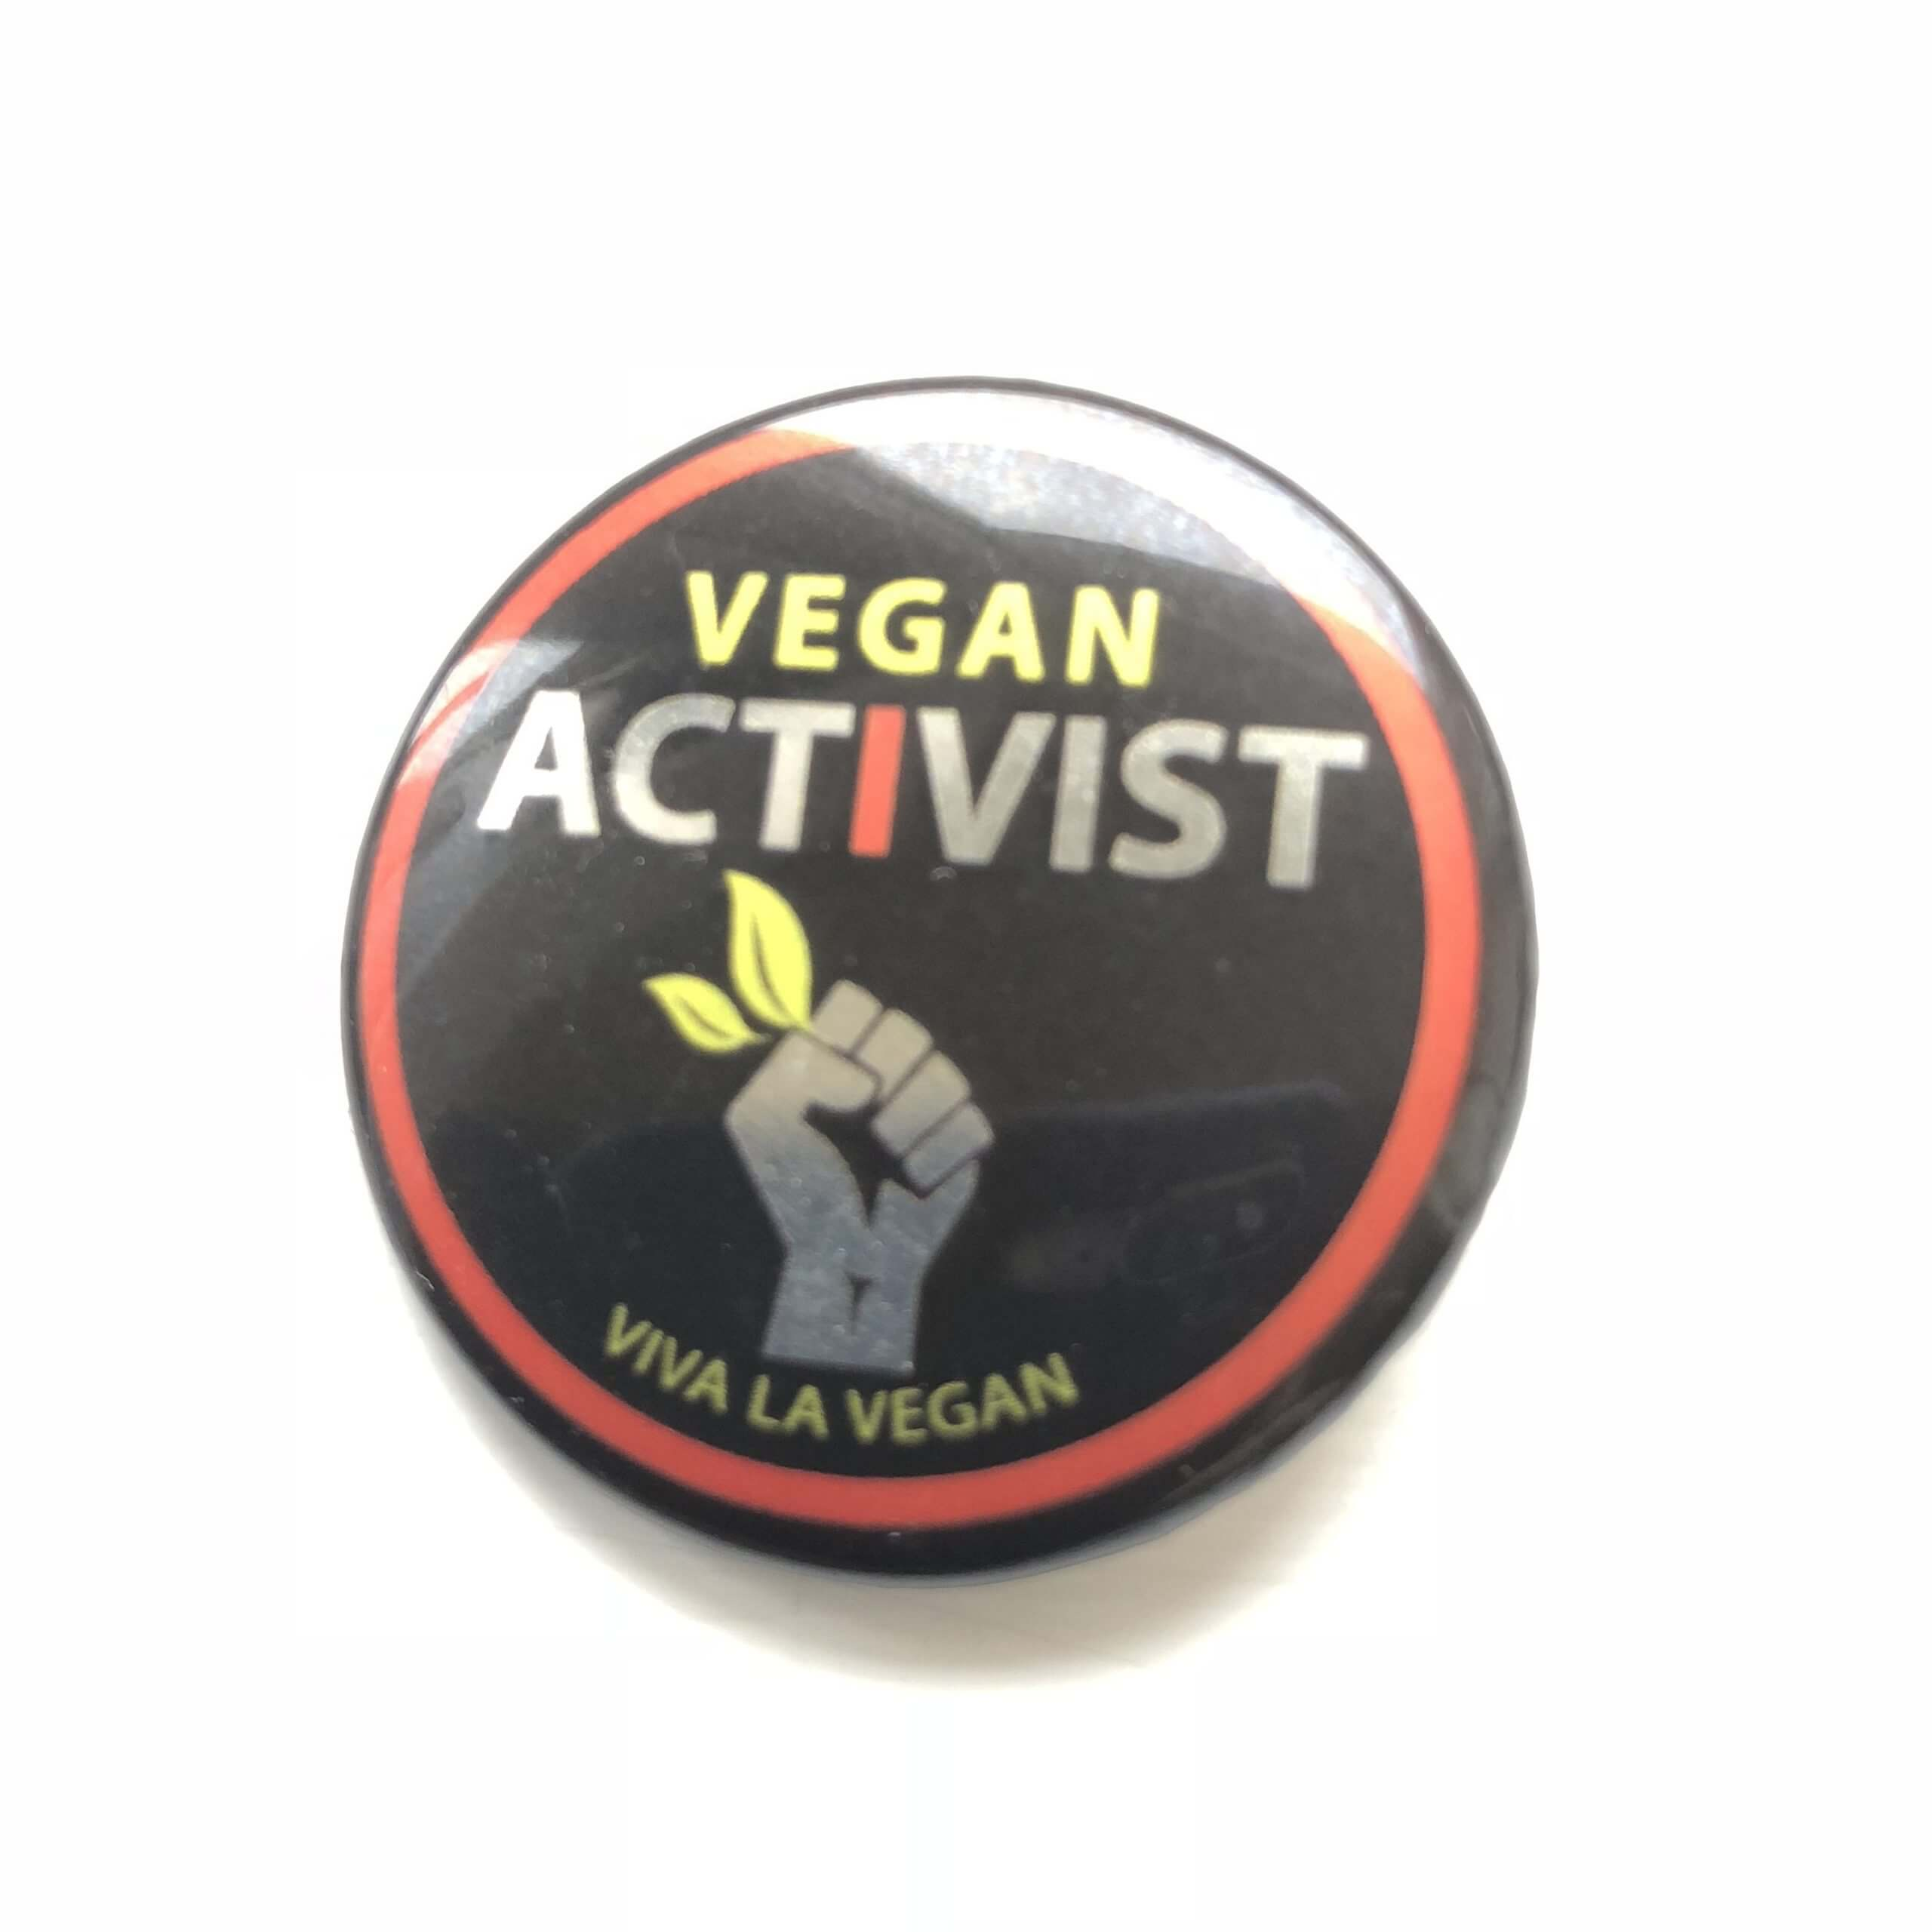 38mm Metallic Badge: Vegan Activist